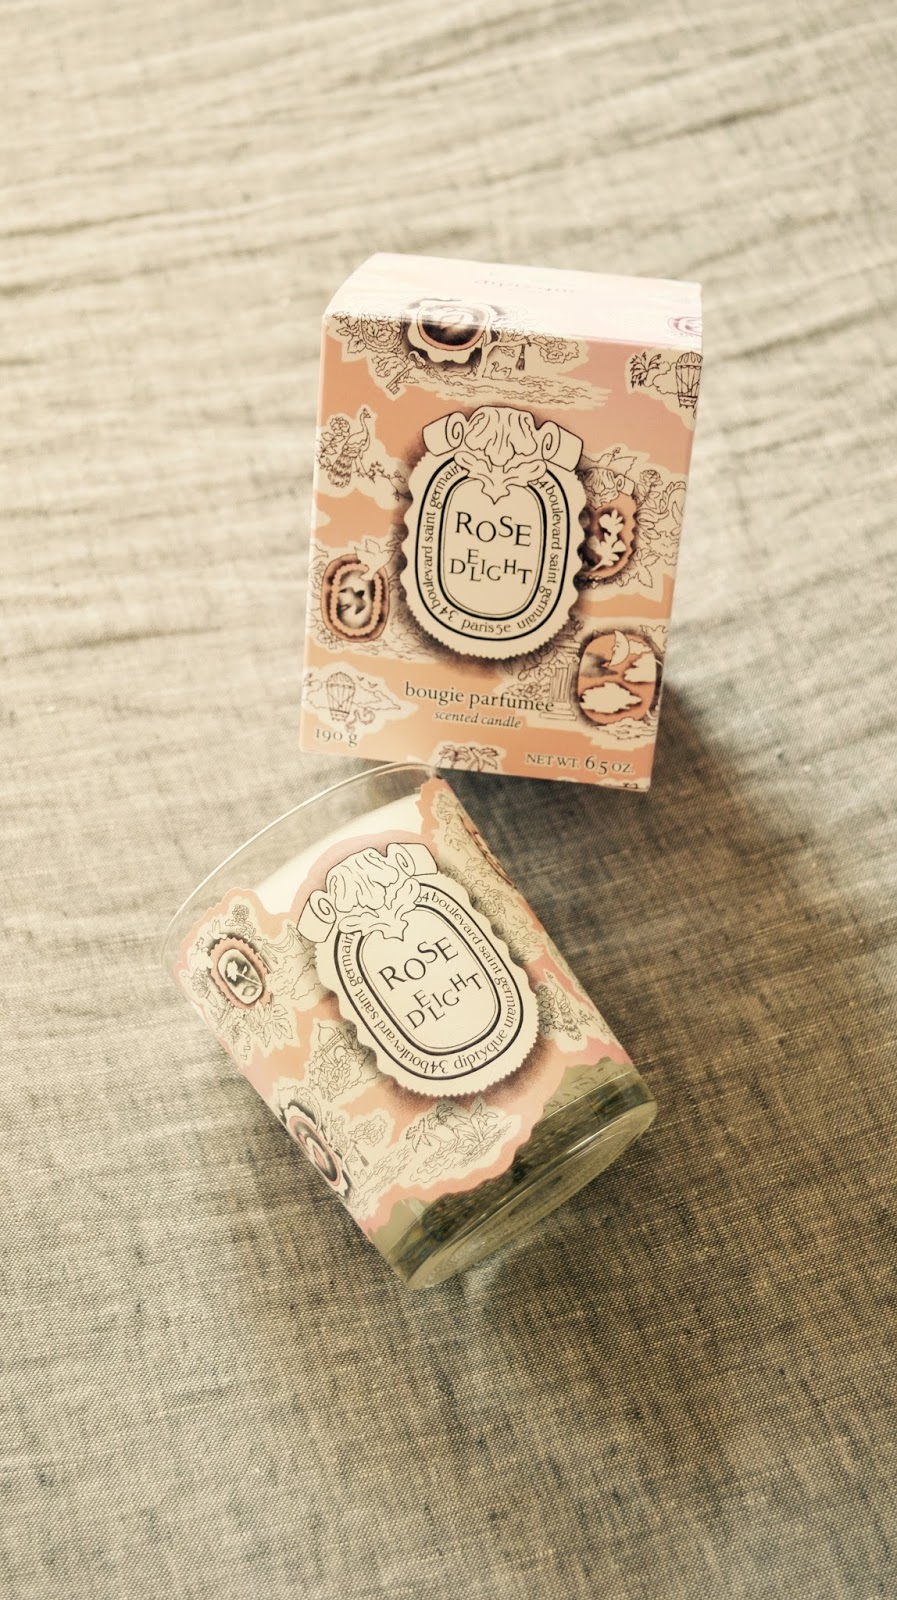 Diptyque: Rose Delight Candle